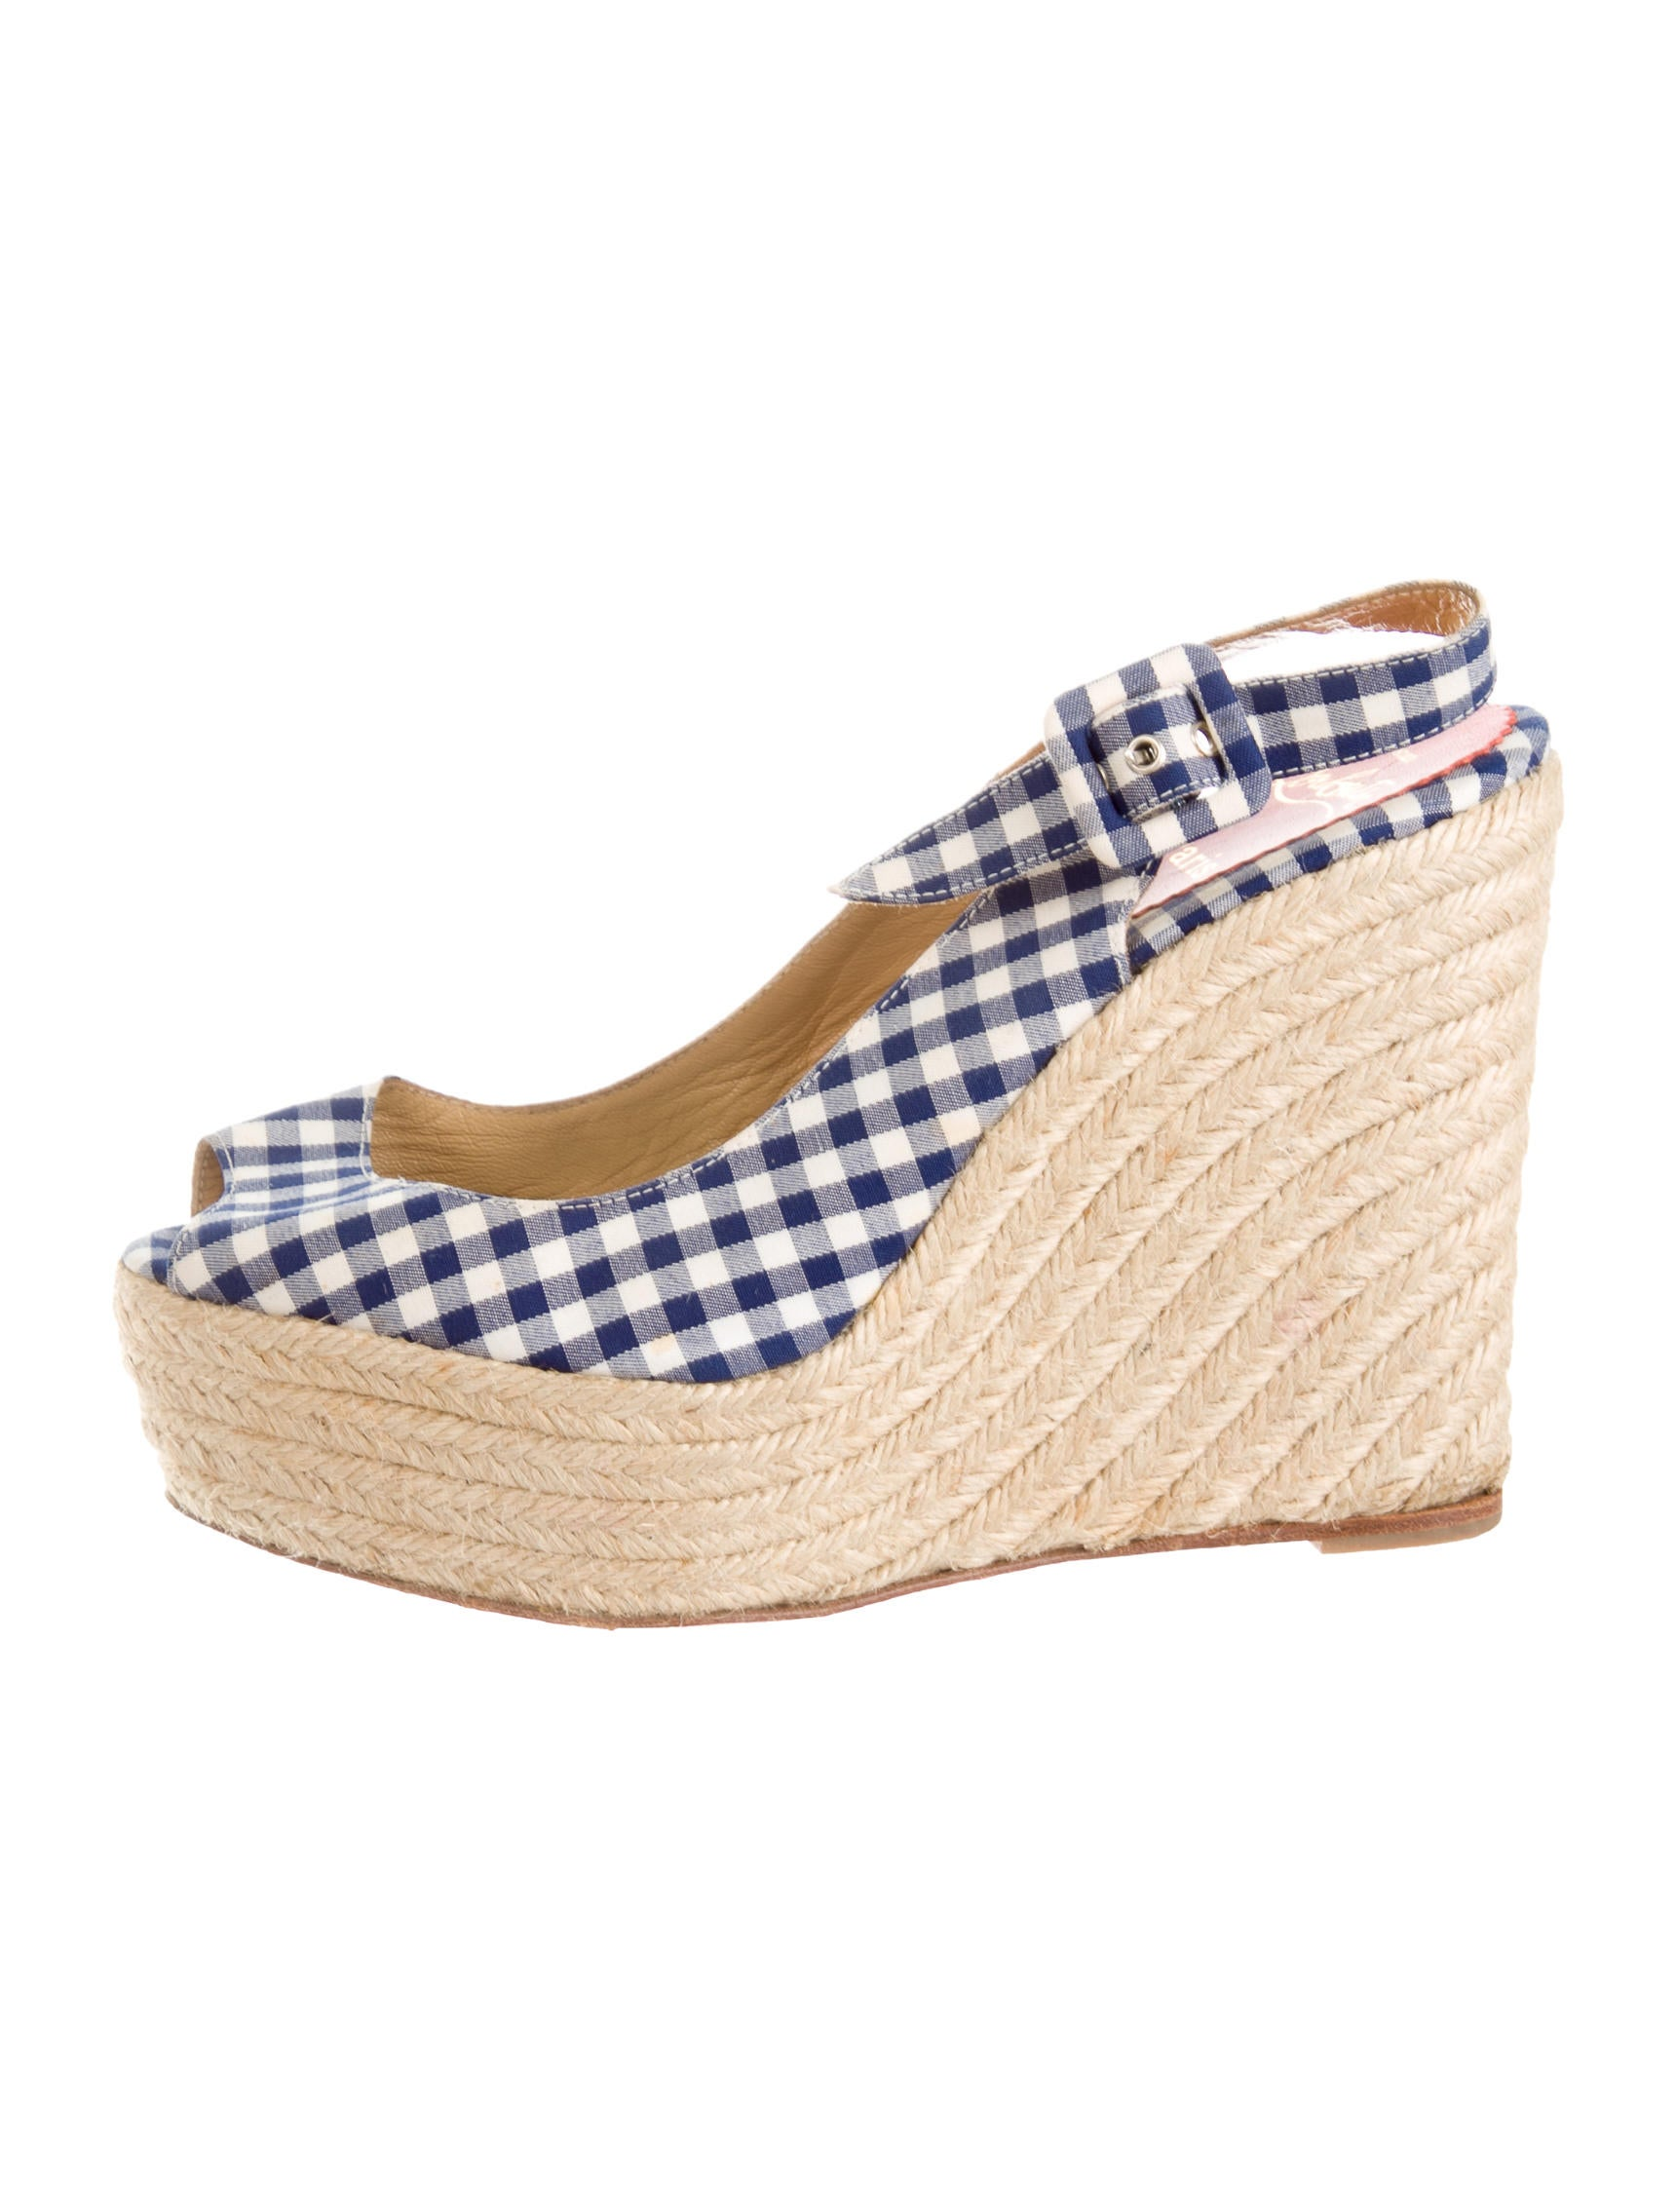 Christian Louboutin Gingham Slingback Wedges - Shoes - CHT43034 ...